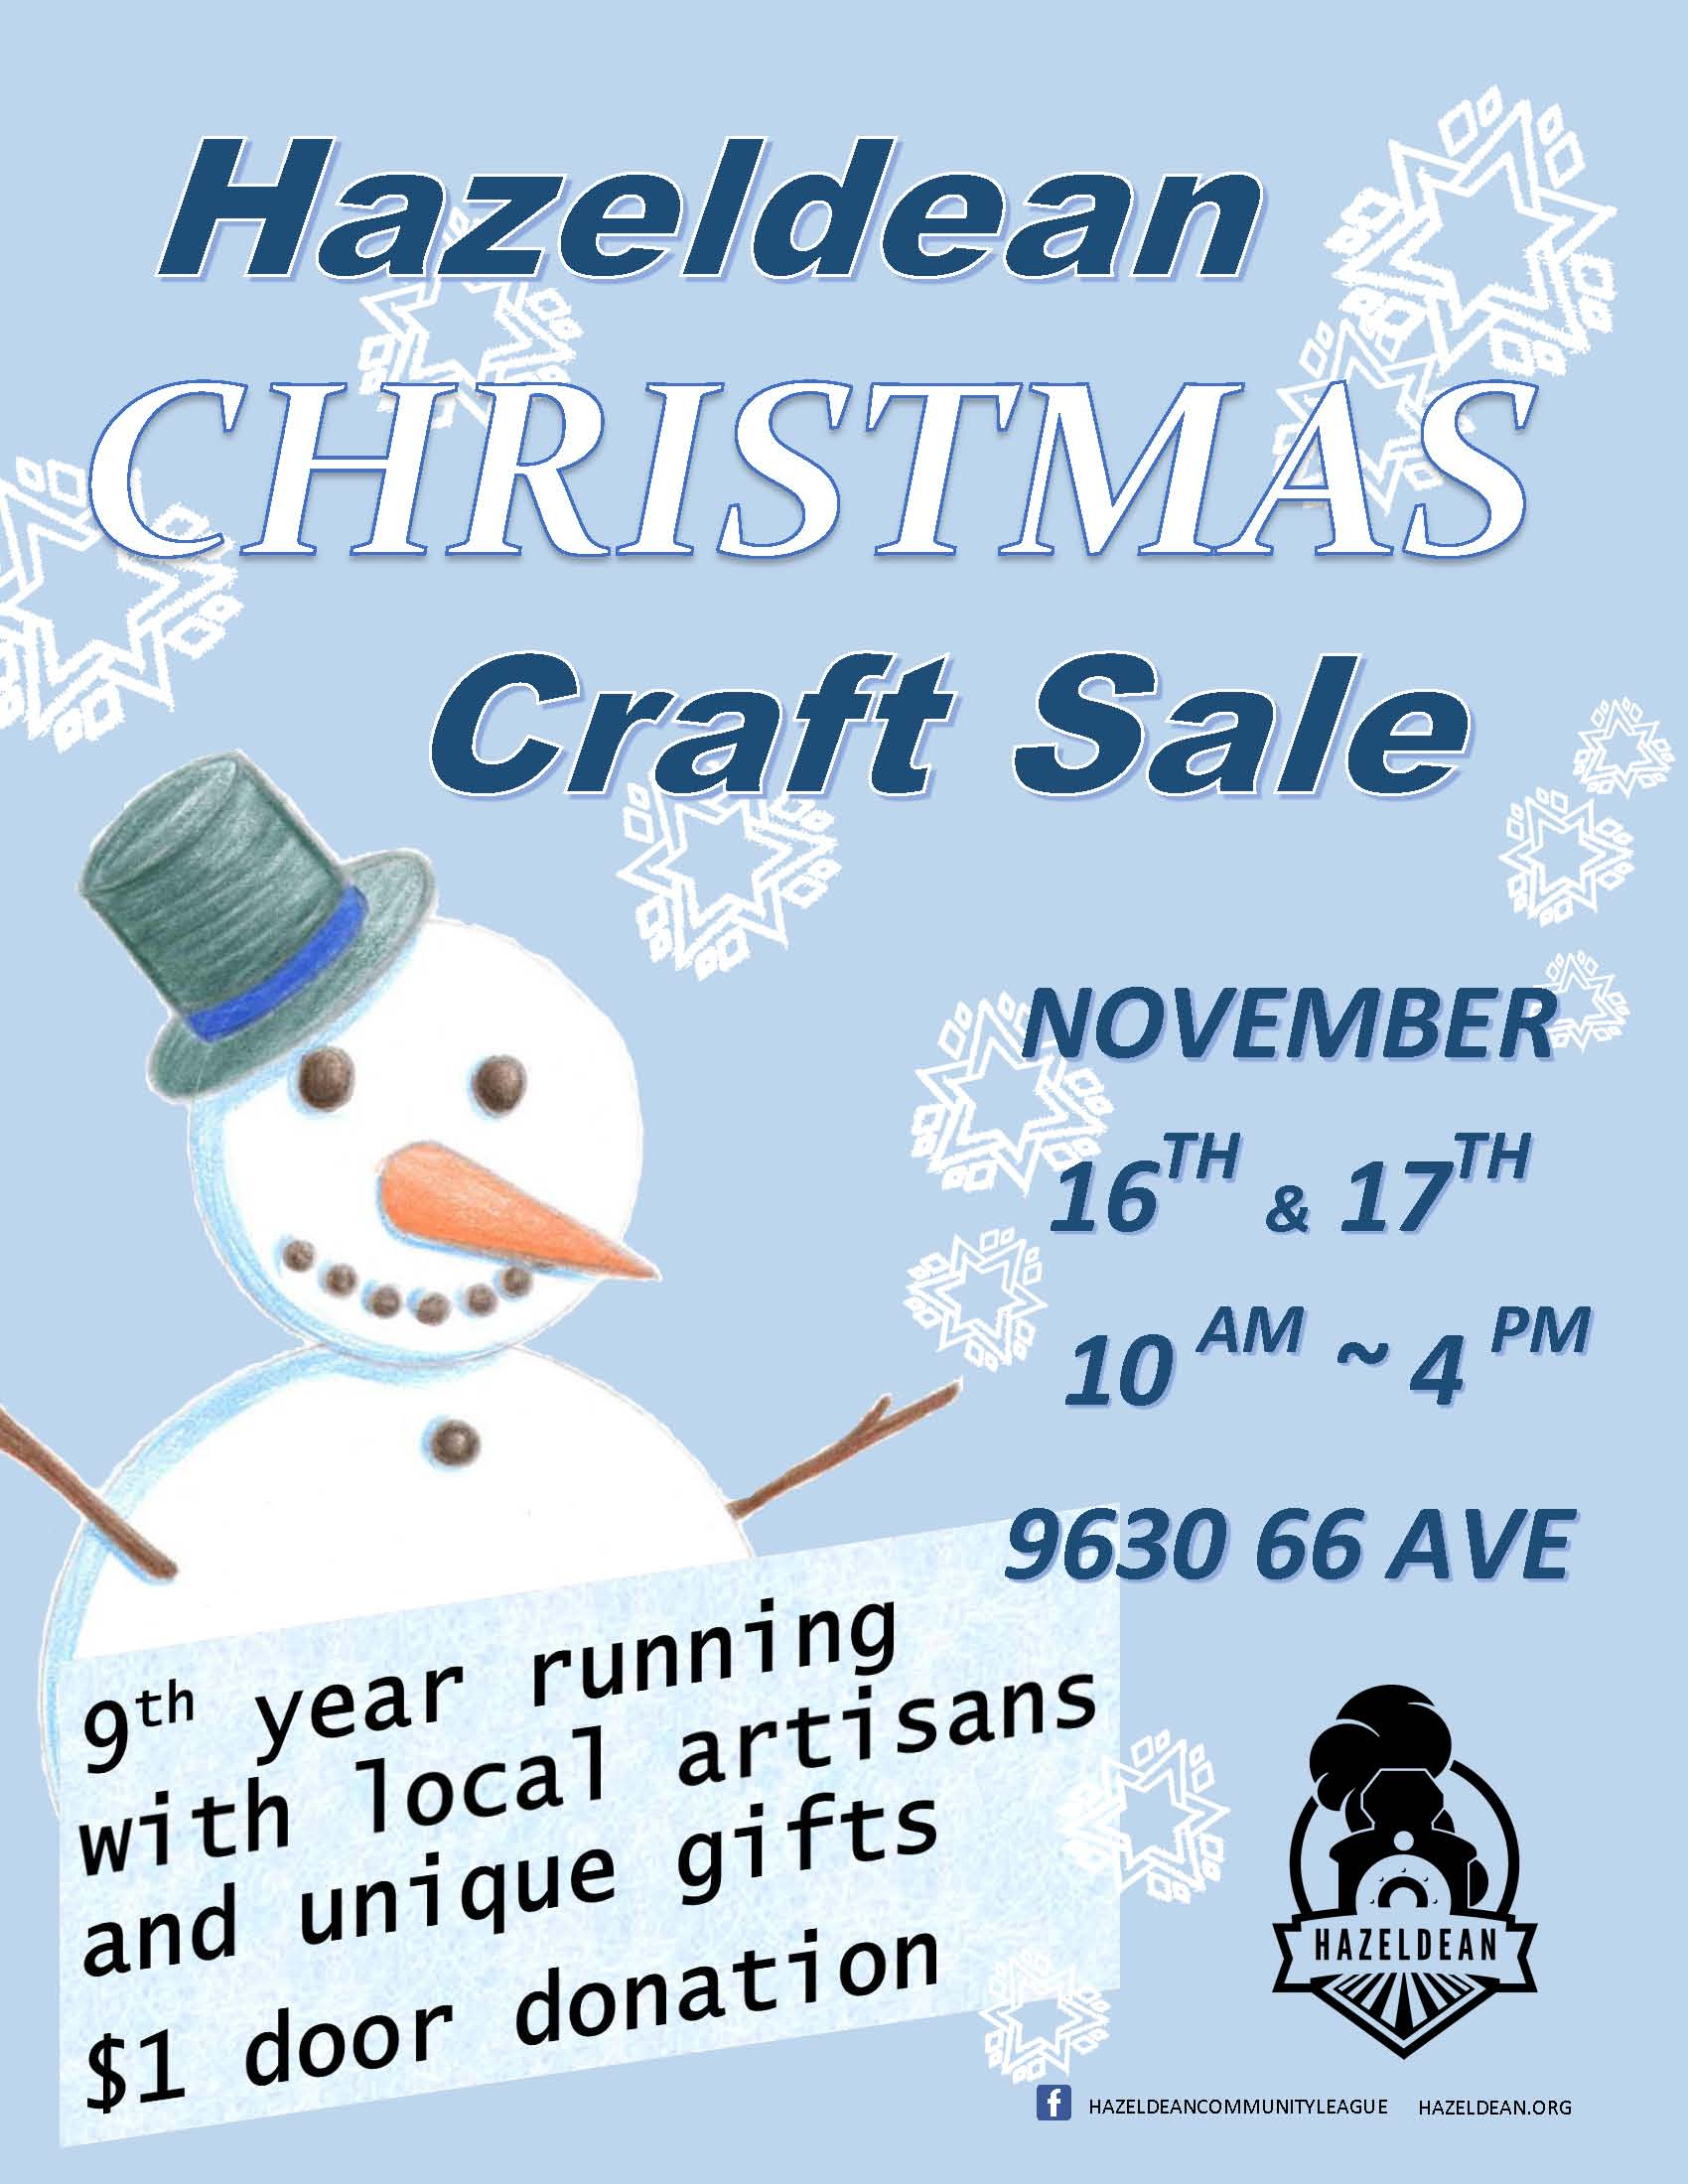 Hazeldean Christmas Craft Sale